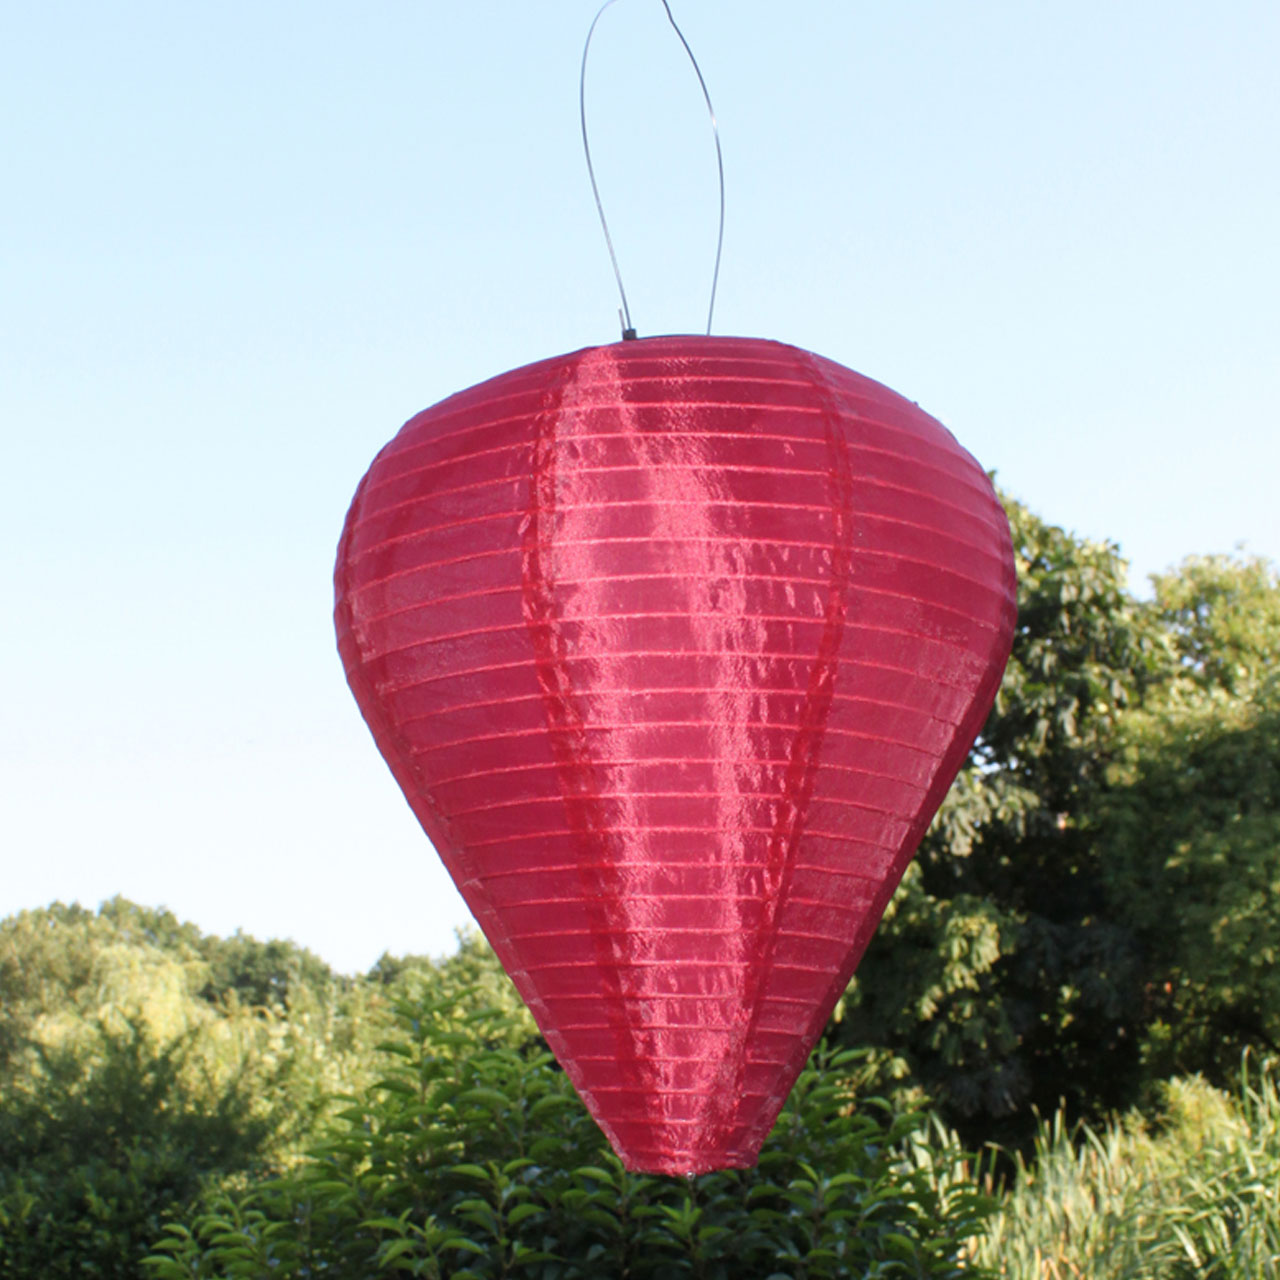 Laterne Aus Luftballon Solar Led Laterne Wetterfest Ballon Bordeaux